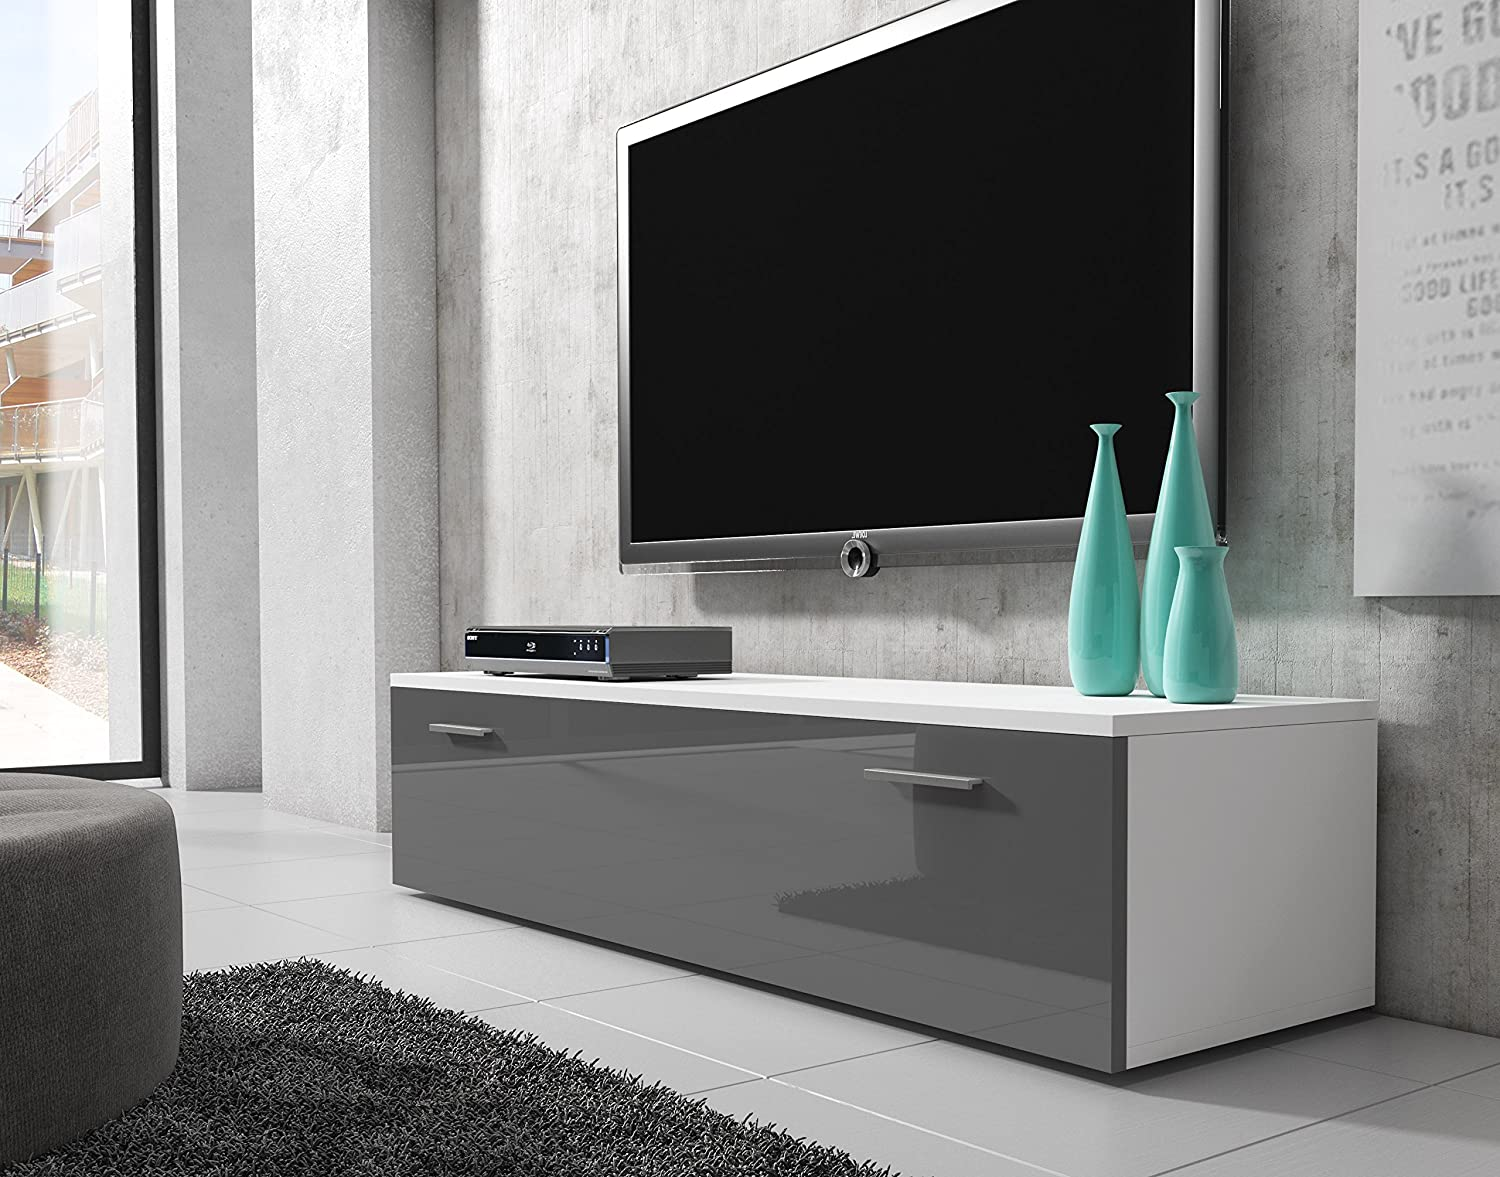 Tv Unit Cabinet Stand Boston Body Matte White Amazon Co Uk  # Groupon Meuble Tv